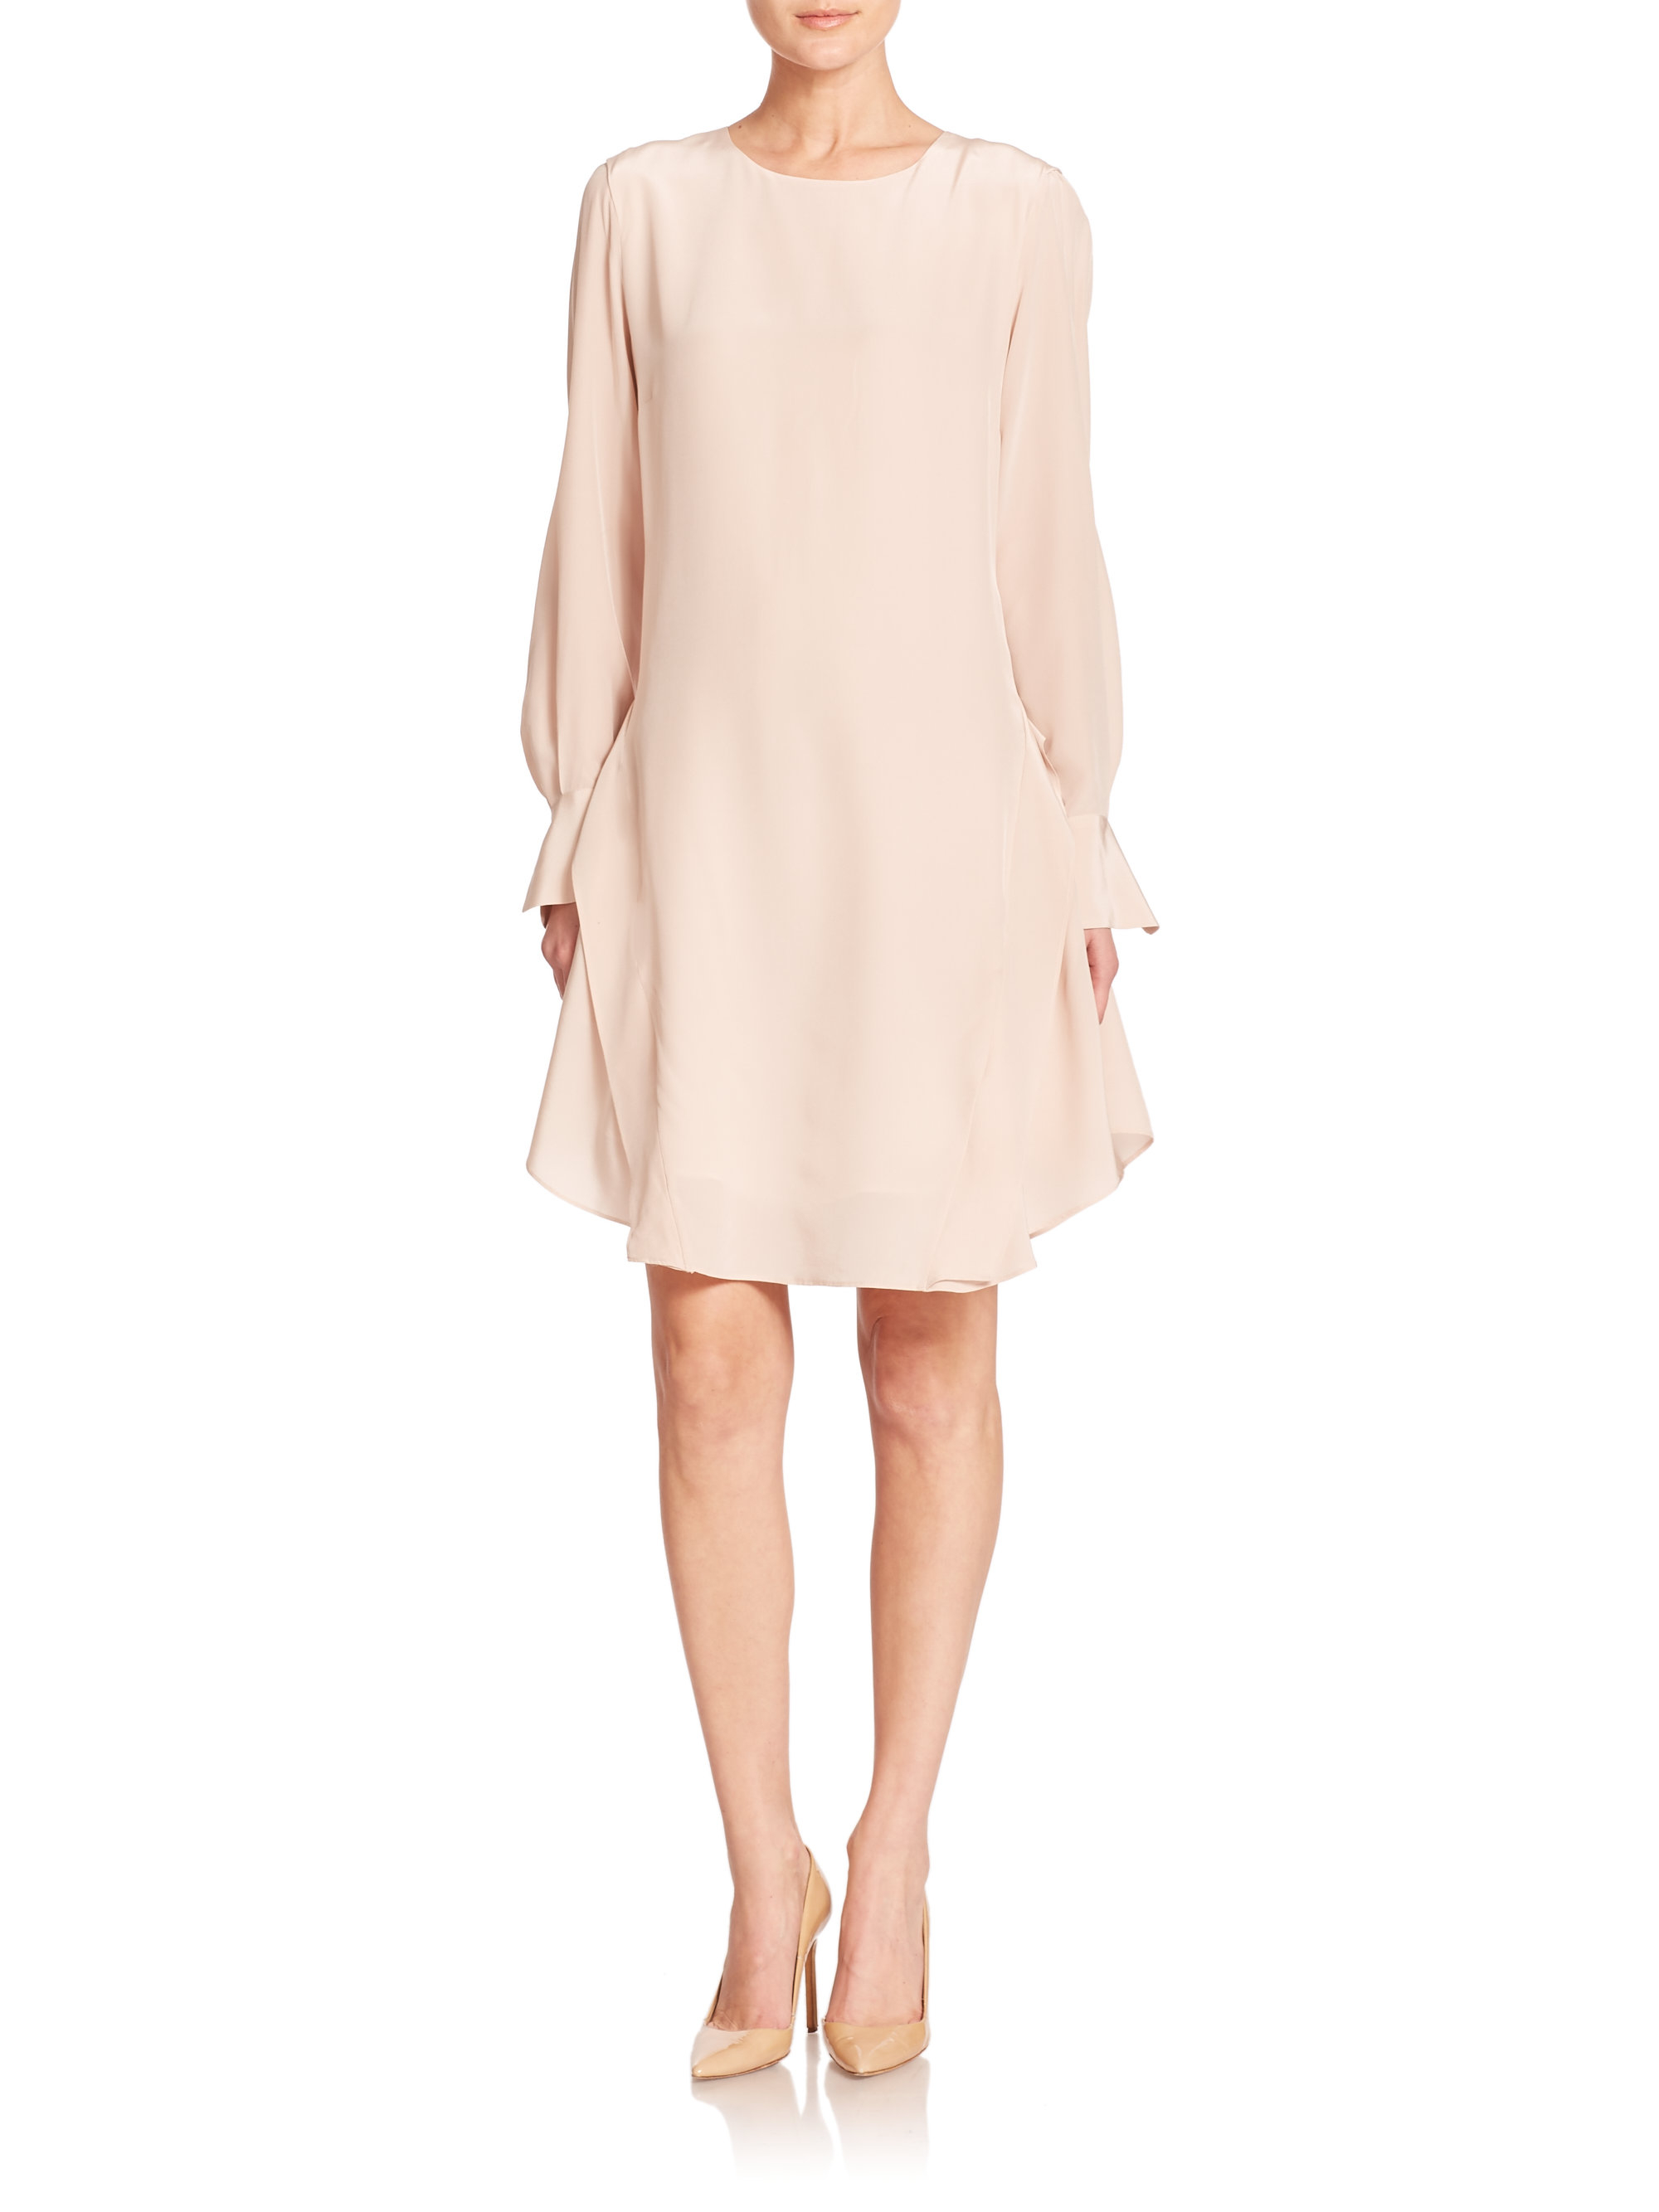 Ruffled scarf dress See By Chloé Recommend Cheap New For Sale Sale With Credit Card Cheap Sale Free Shipping Shop Offer Sale Online 4ATnl06e